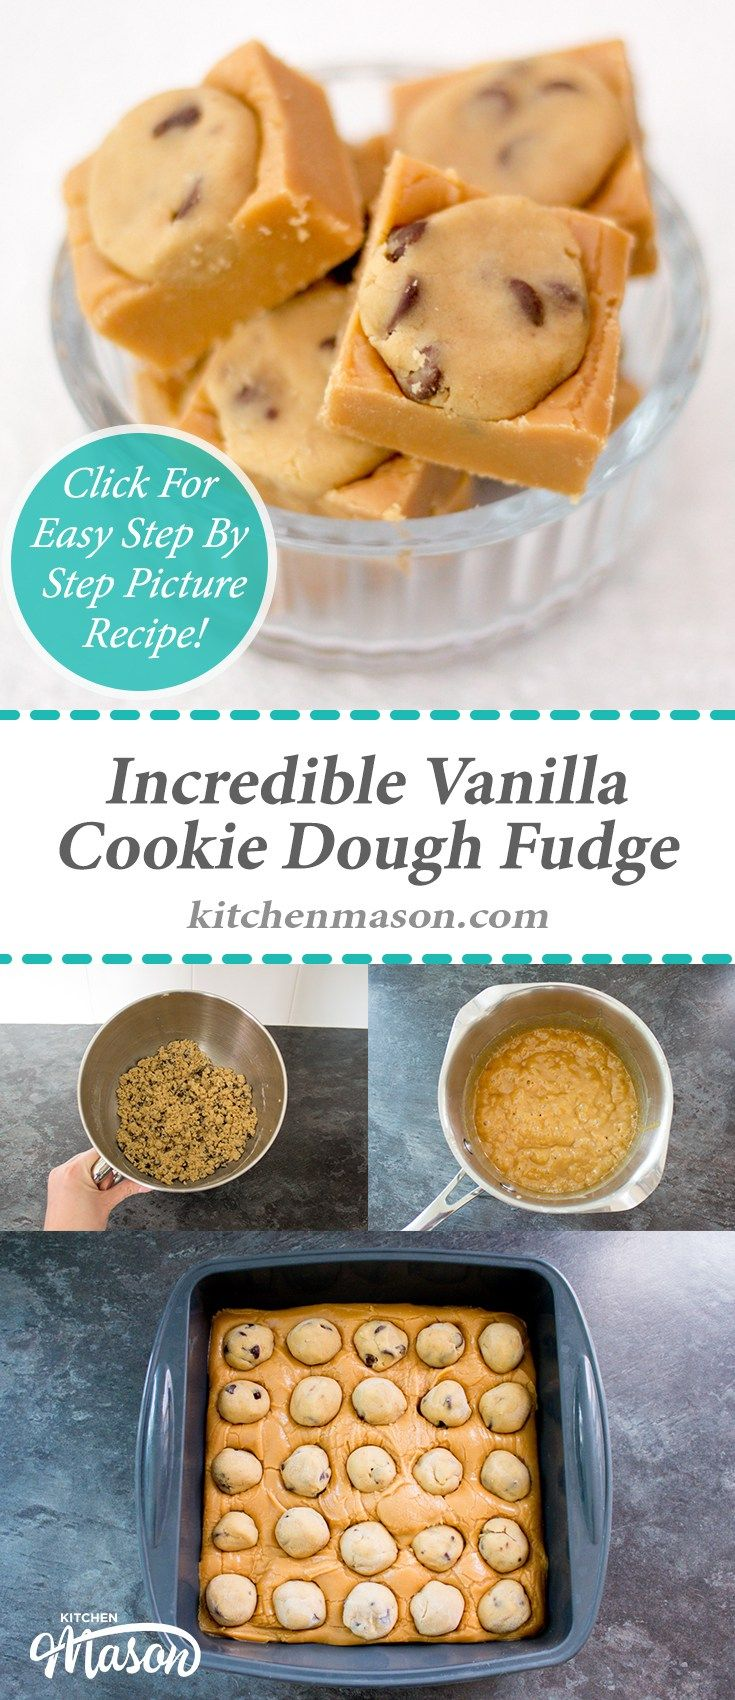 Incredible Cookie Dough Fudge | Vanilla | Chocolate Chip